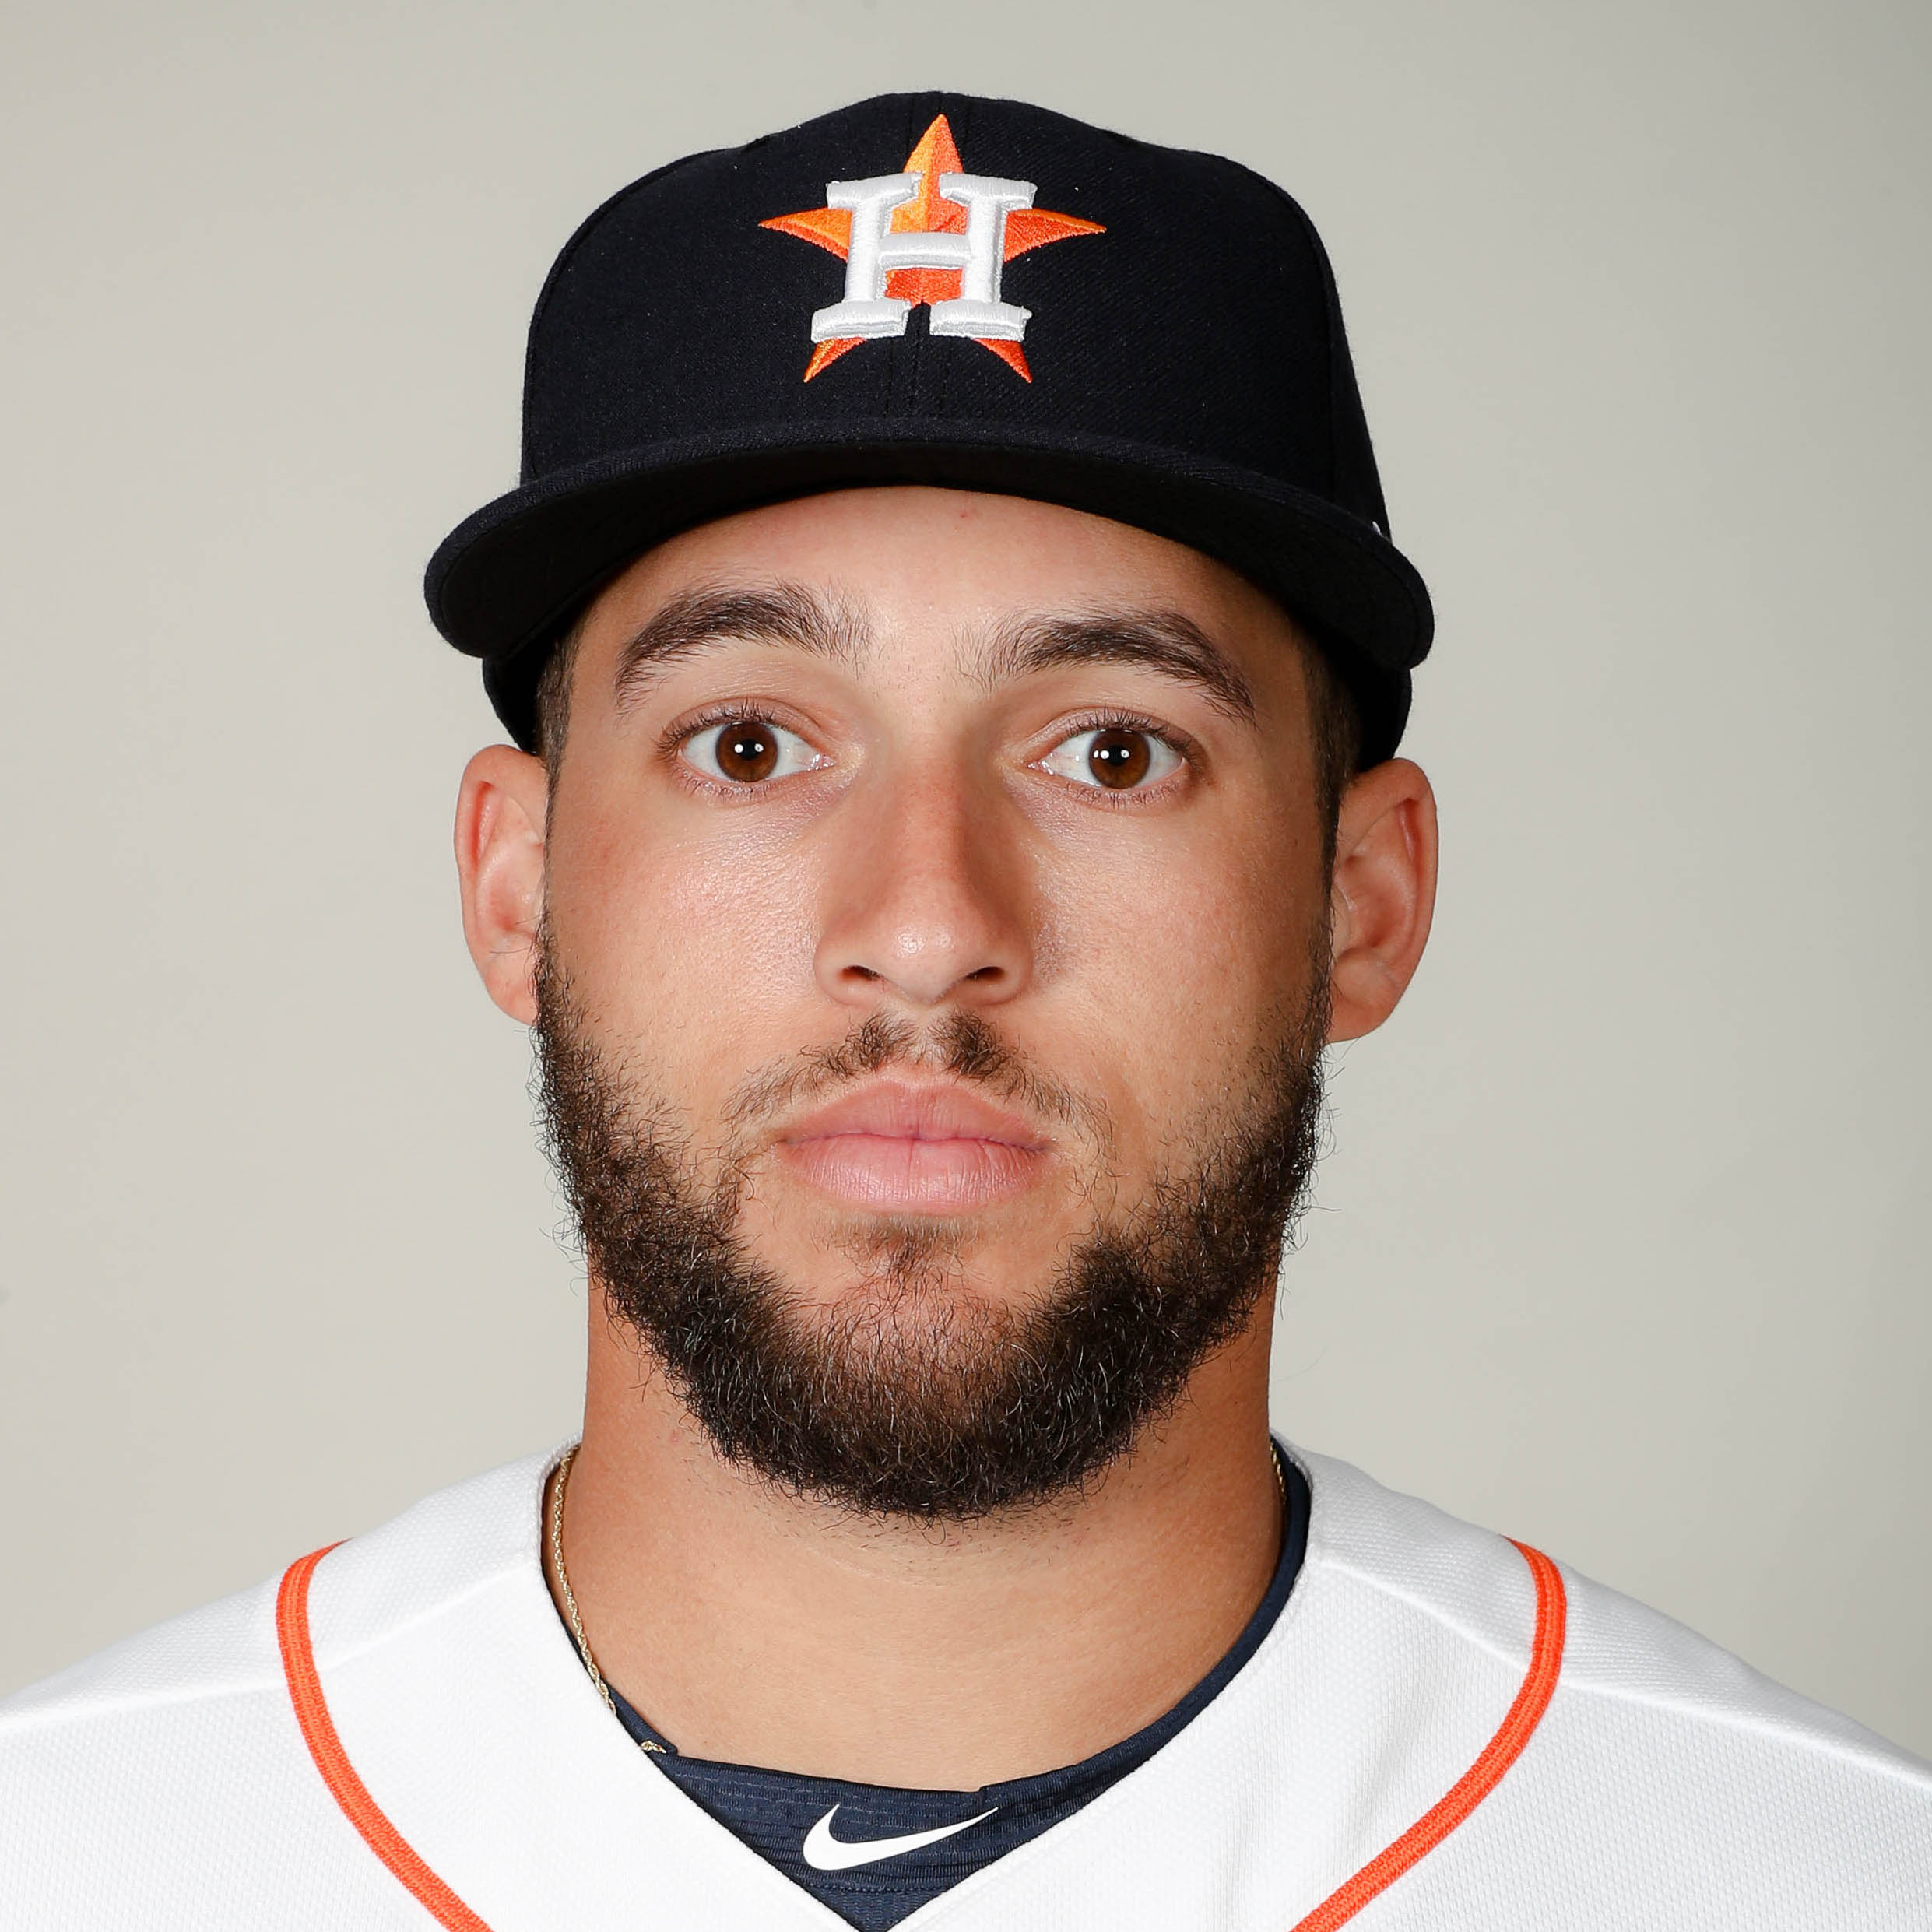 George Springer (R) Headshot